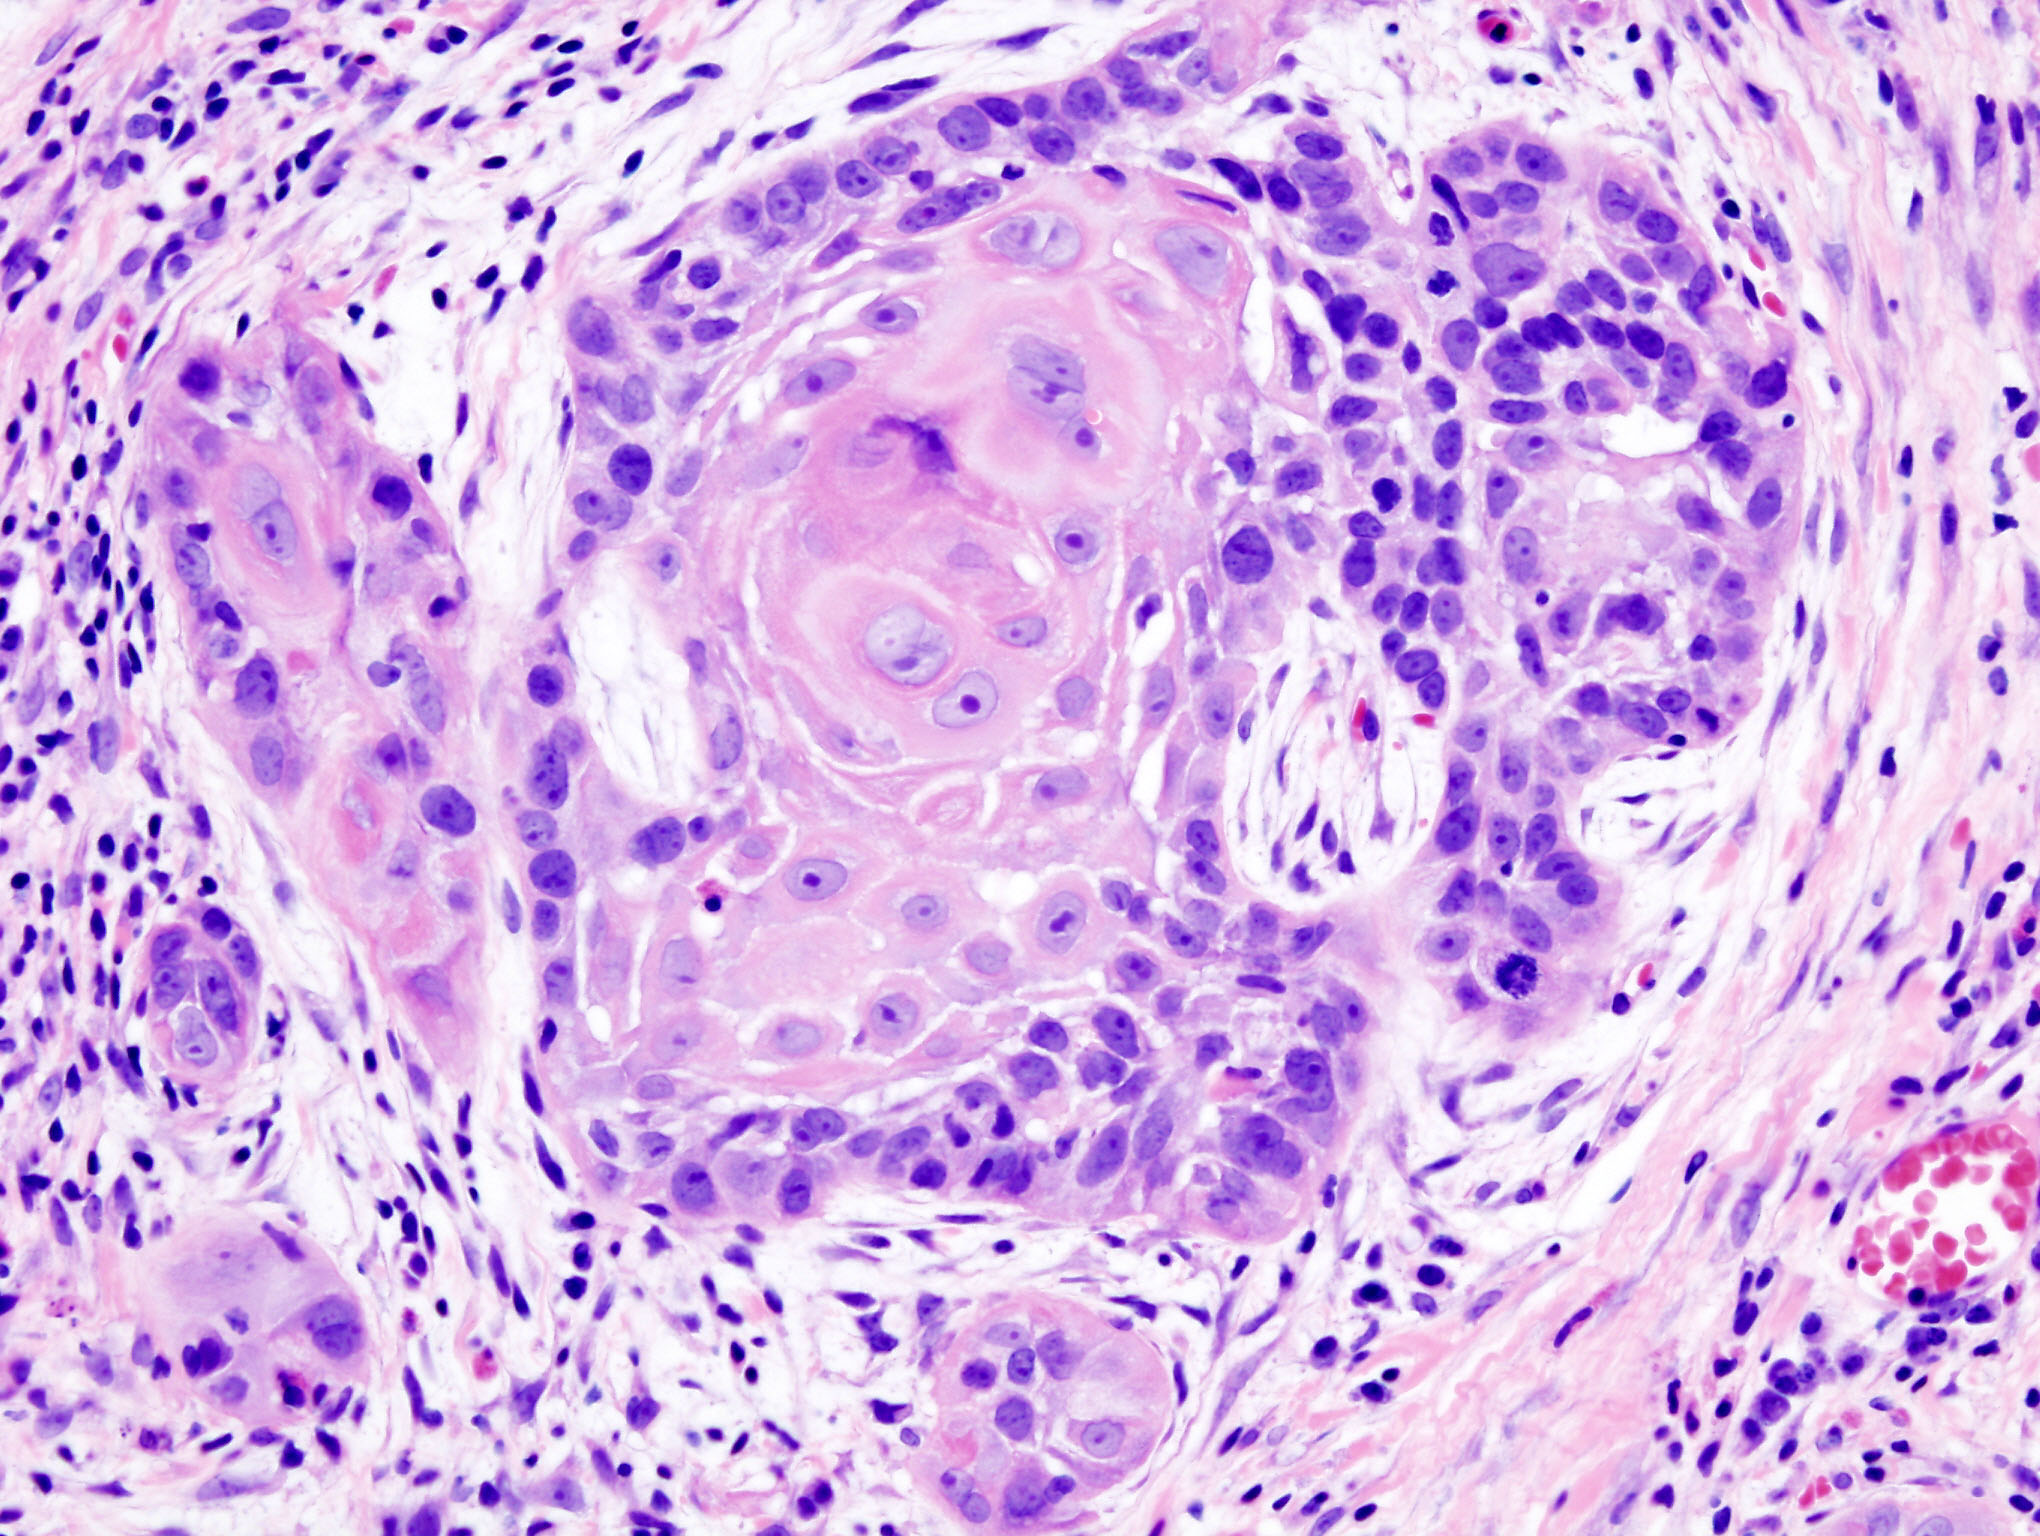 http://upload.wikimedia.org/wikipedia/commons/5/5e/Oral_cancer_(1)_squamous_cell_carcinoma_histopathology.jpg